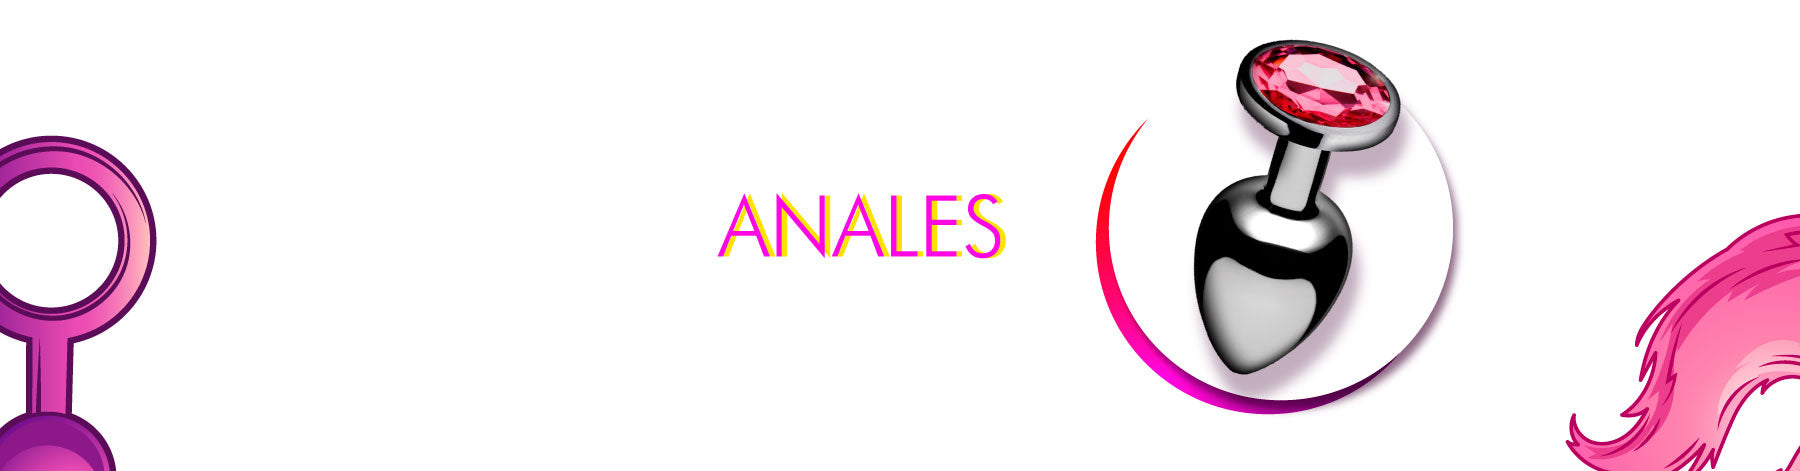 kinky toys sex shop juguetes anales